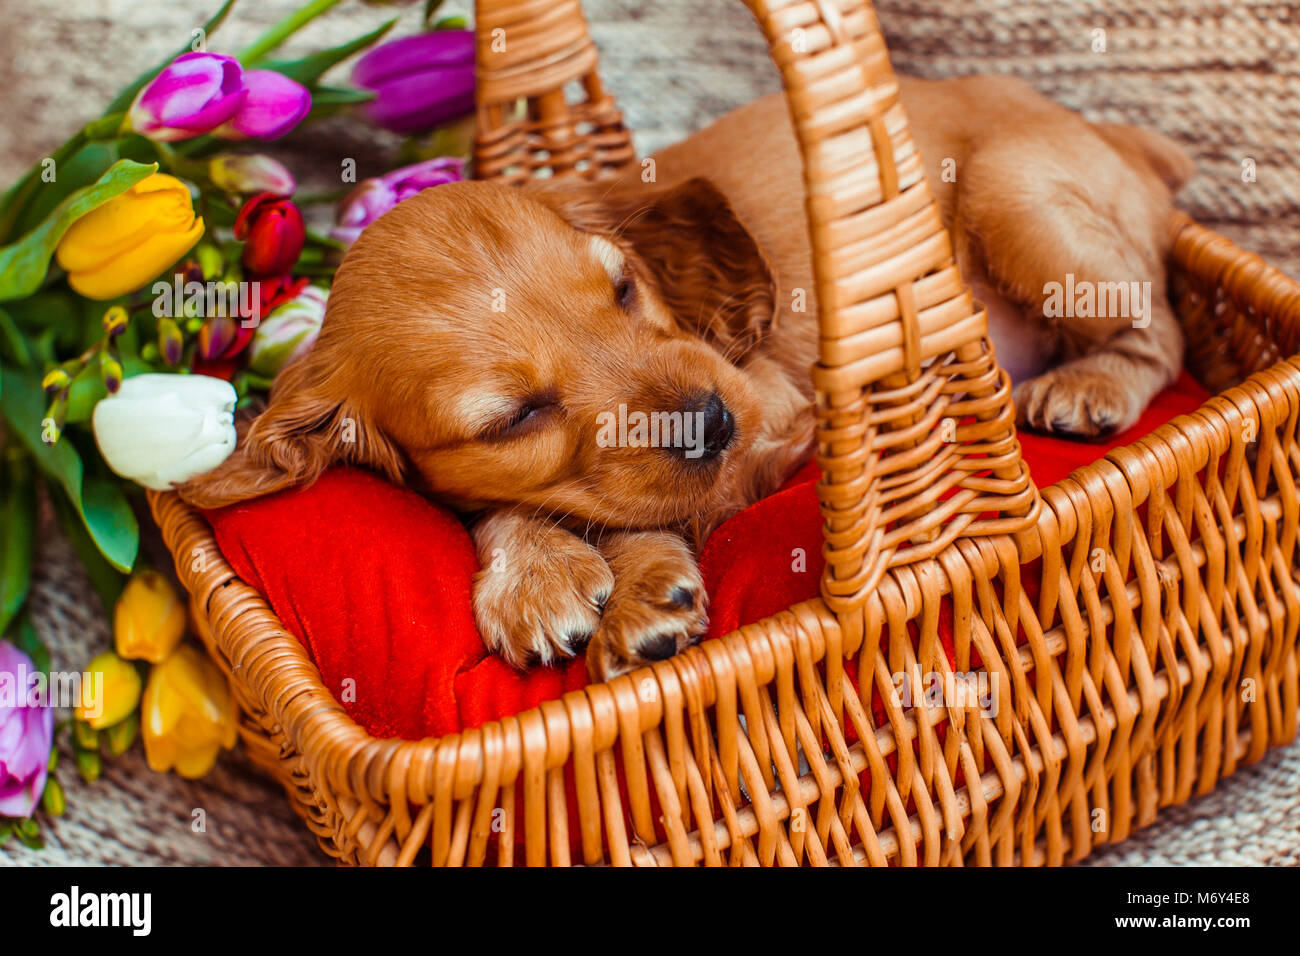 Dog With Quotes Stock Photos & Dog With Quotes Stock Images